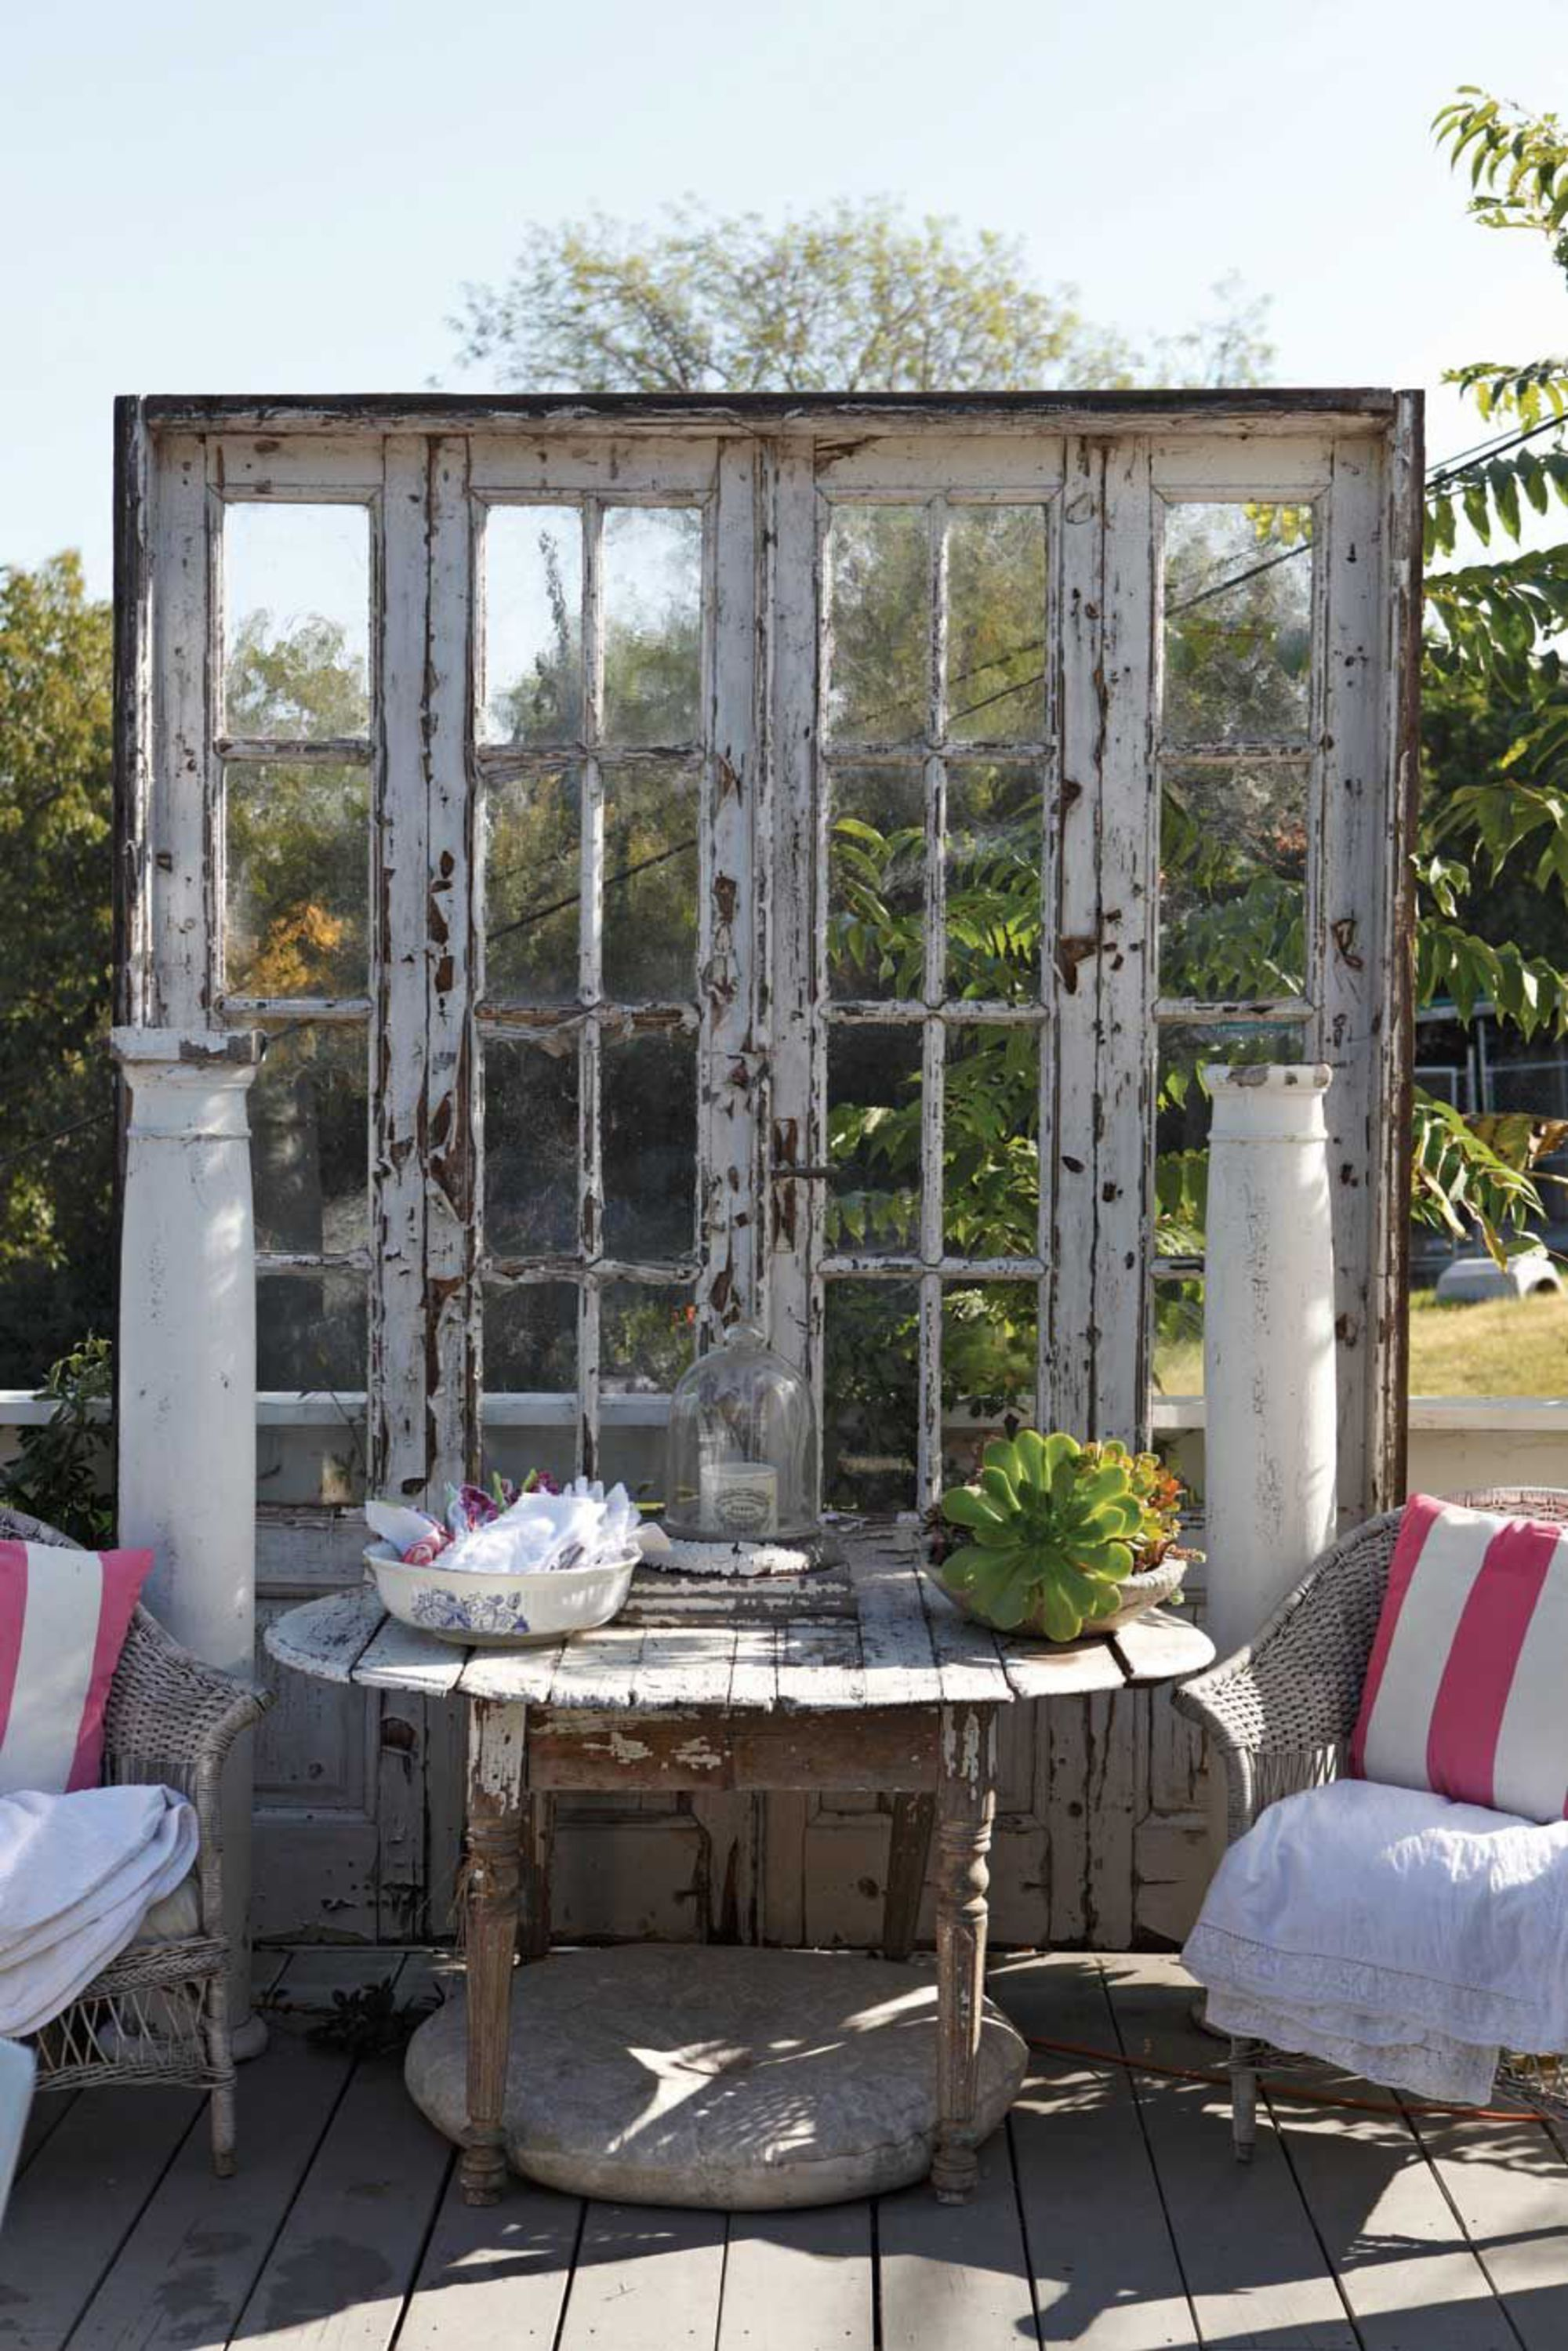 shabby chic outdoor furniture. Shabby Chic Outdoor Furniture. 12 \\u0026 Bohemian Garden Ideas Furniture S R